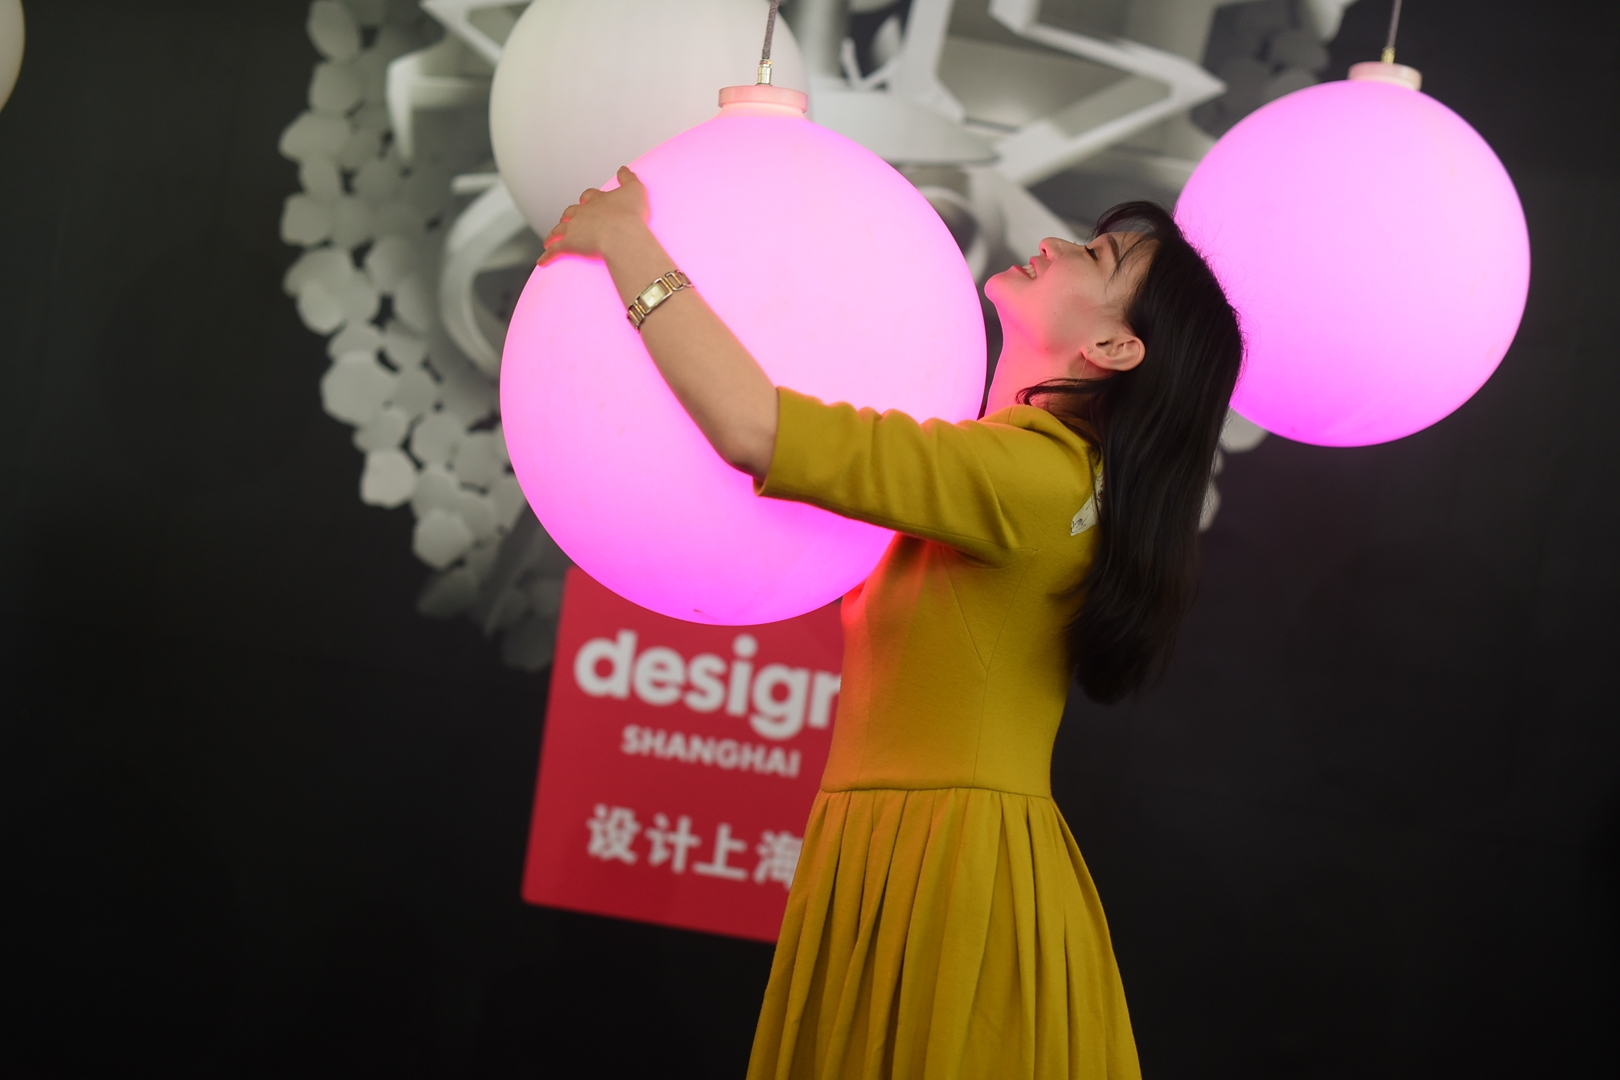 Design Shanghai_Plug & Hug (Copy)